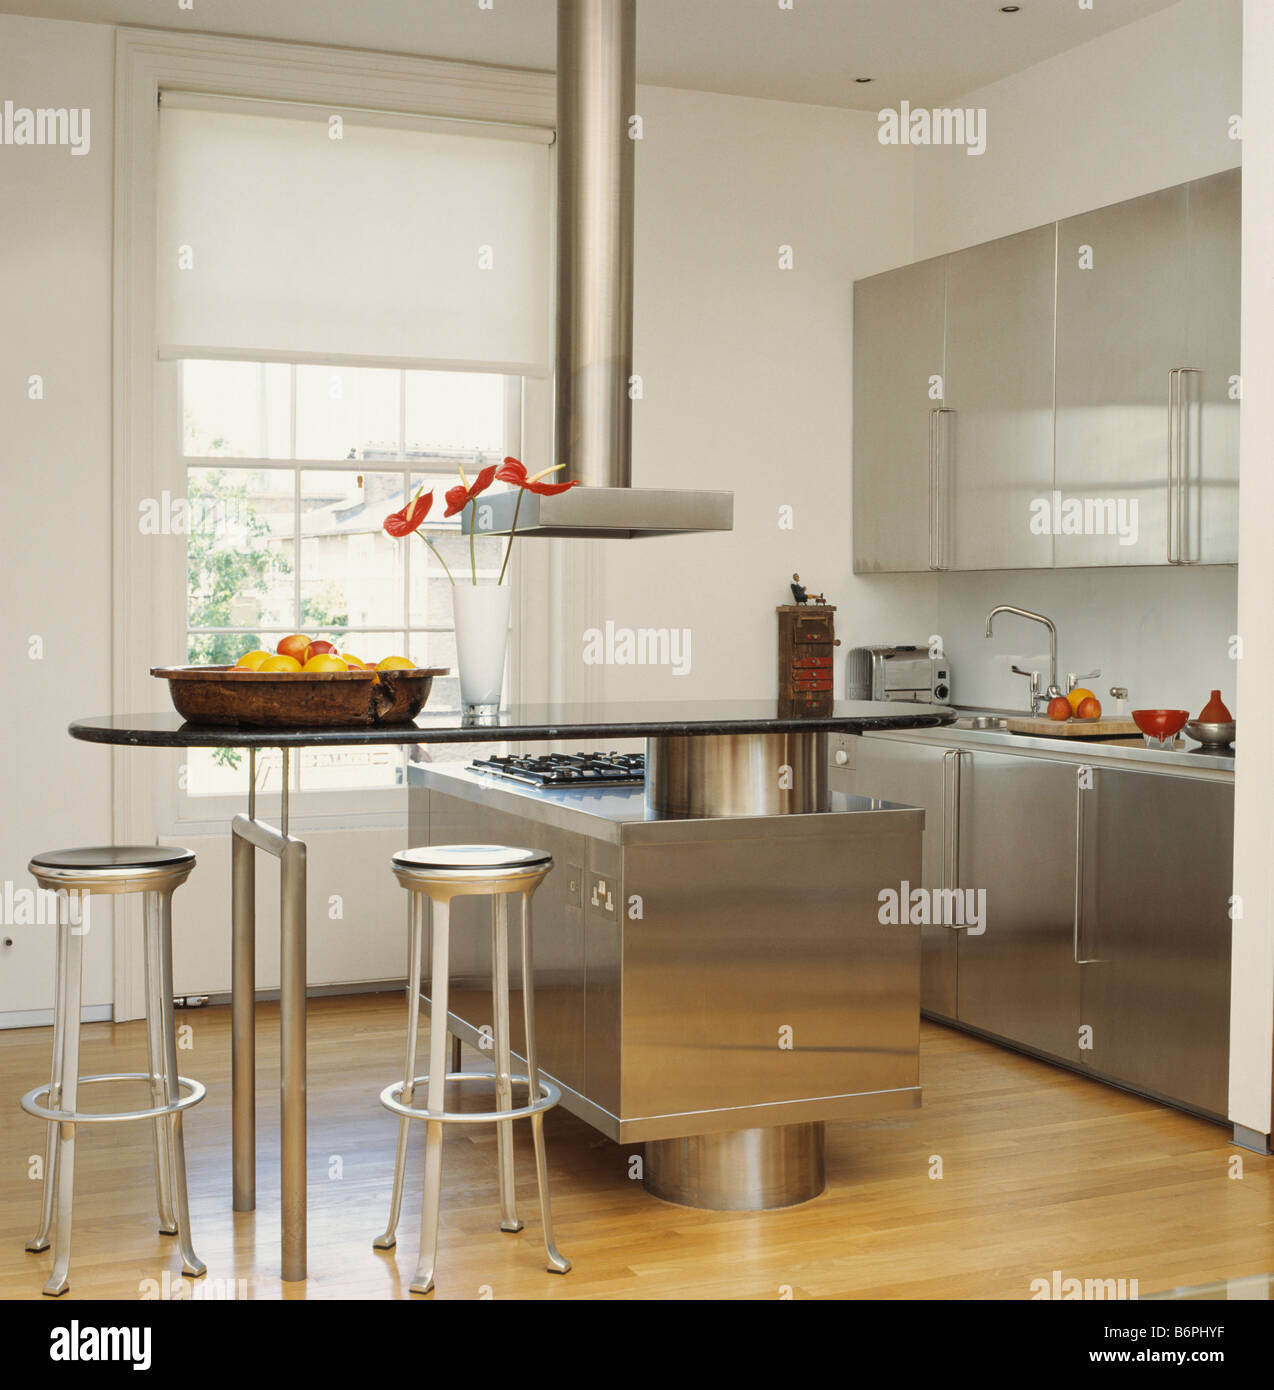 Metal Stools At Glass Breakfast Bar In Modern White Kitchen With